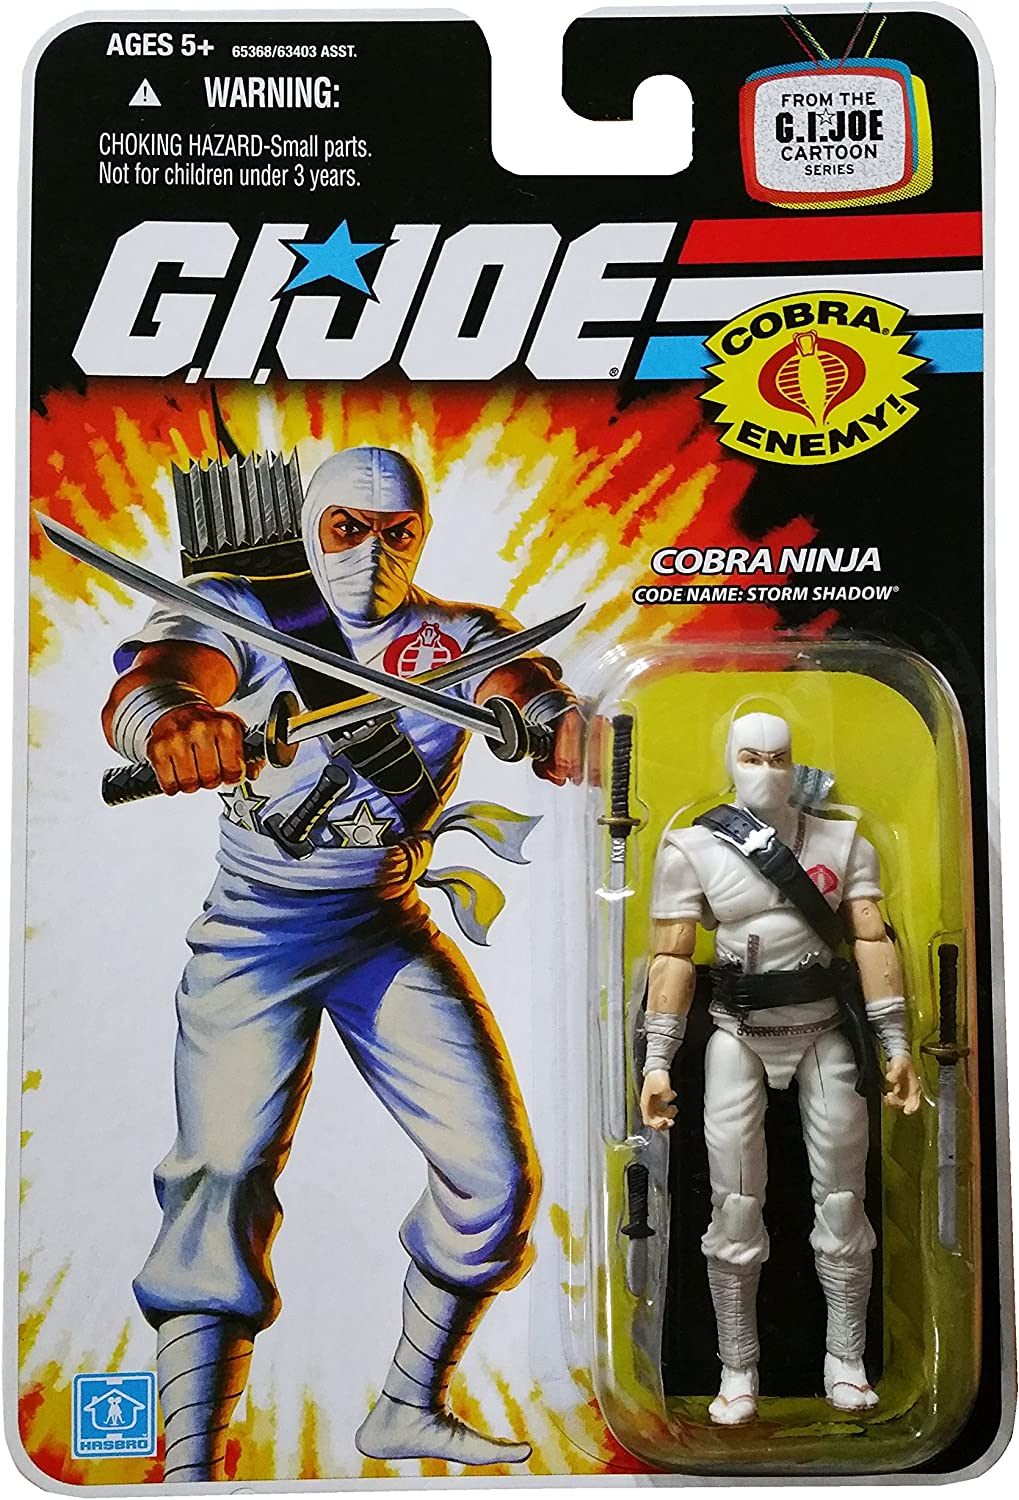 GI Joe 25th Anniversary Cartoon Series Cardback: Storm Shadow Classic (Cobra Ninja) 3.75 Action Figure